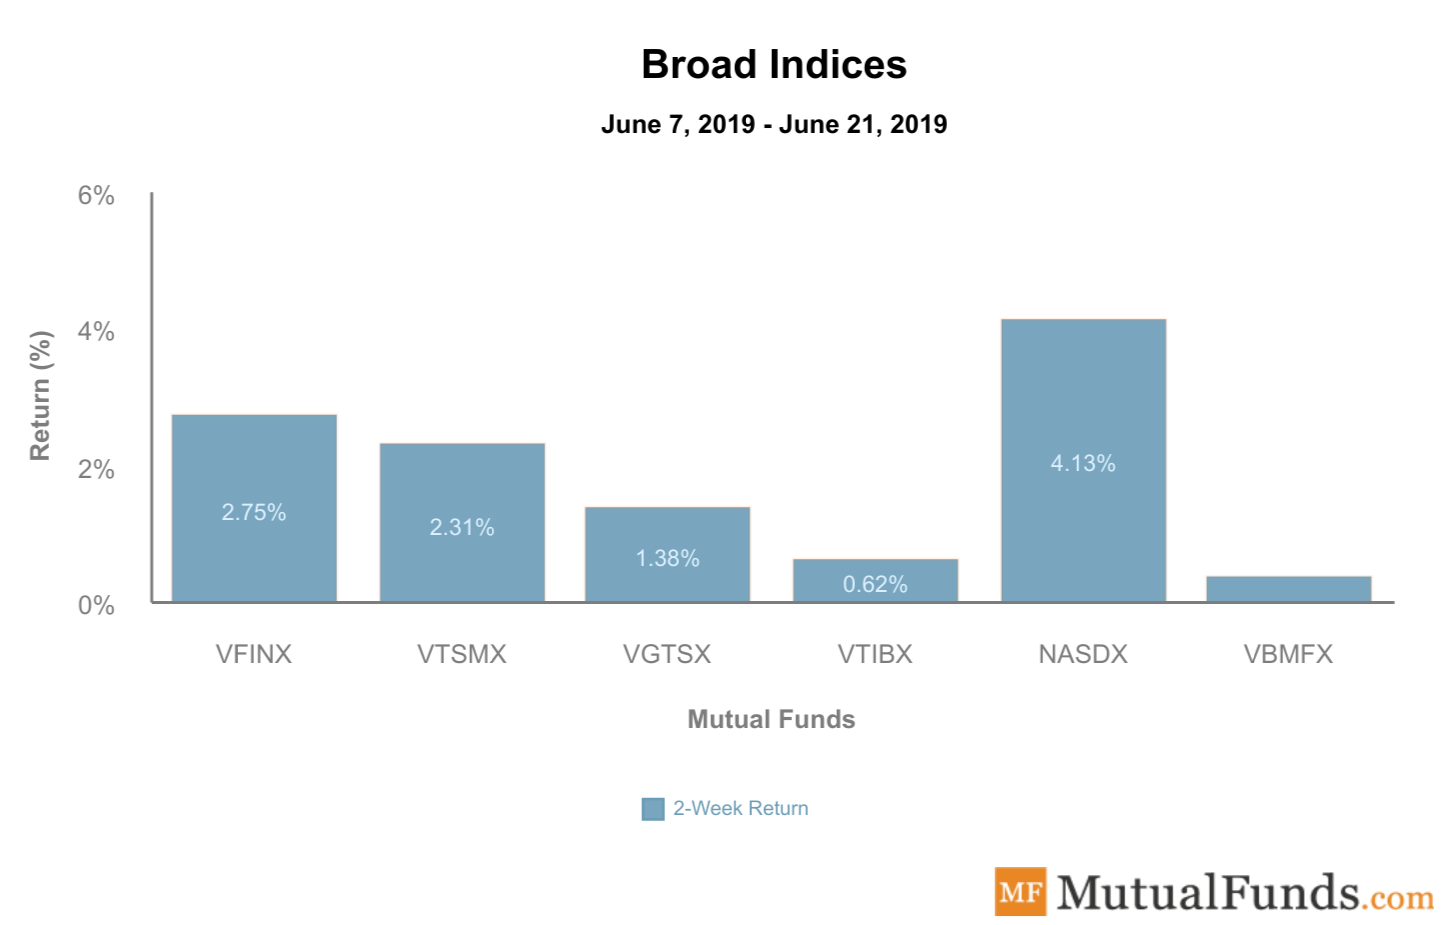 Broad Indices Performance June 25, 2019